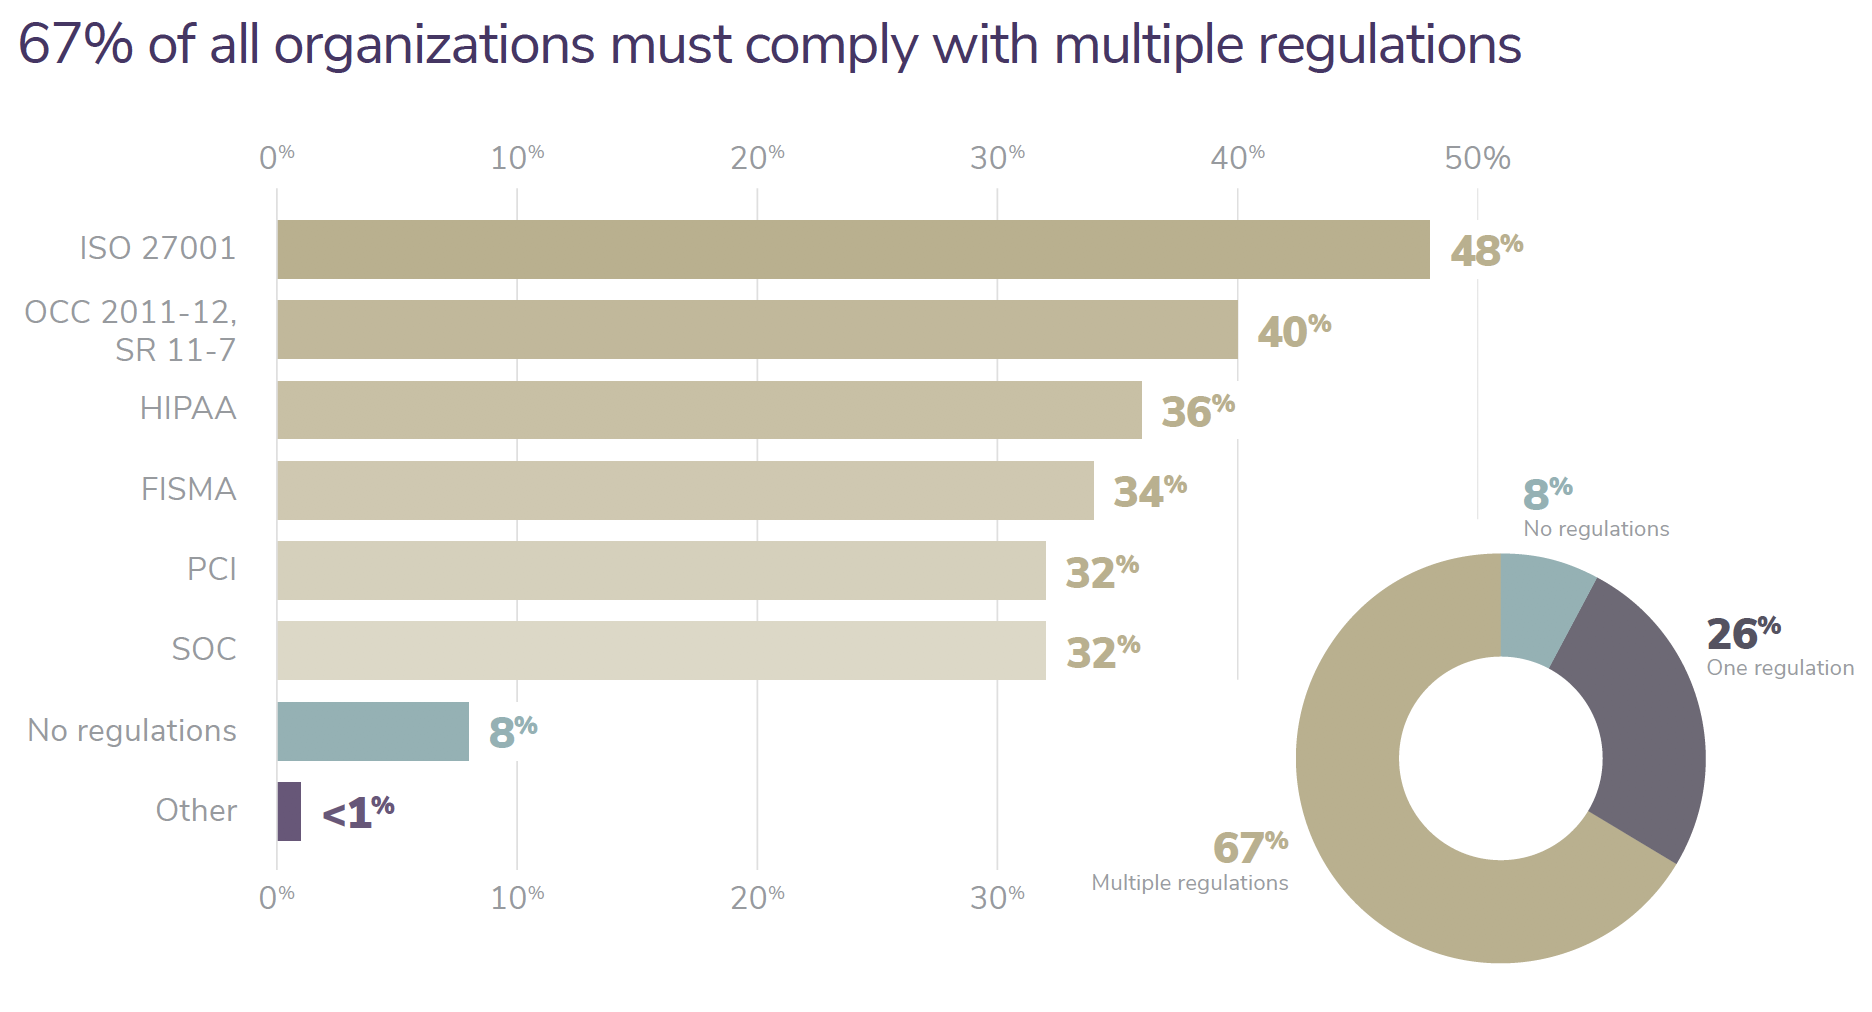 67% of all organizations must comply with multiple regulations